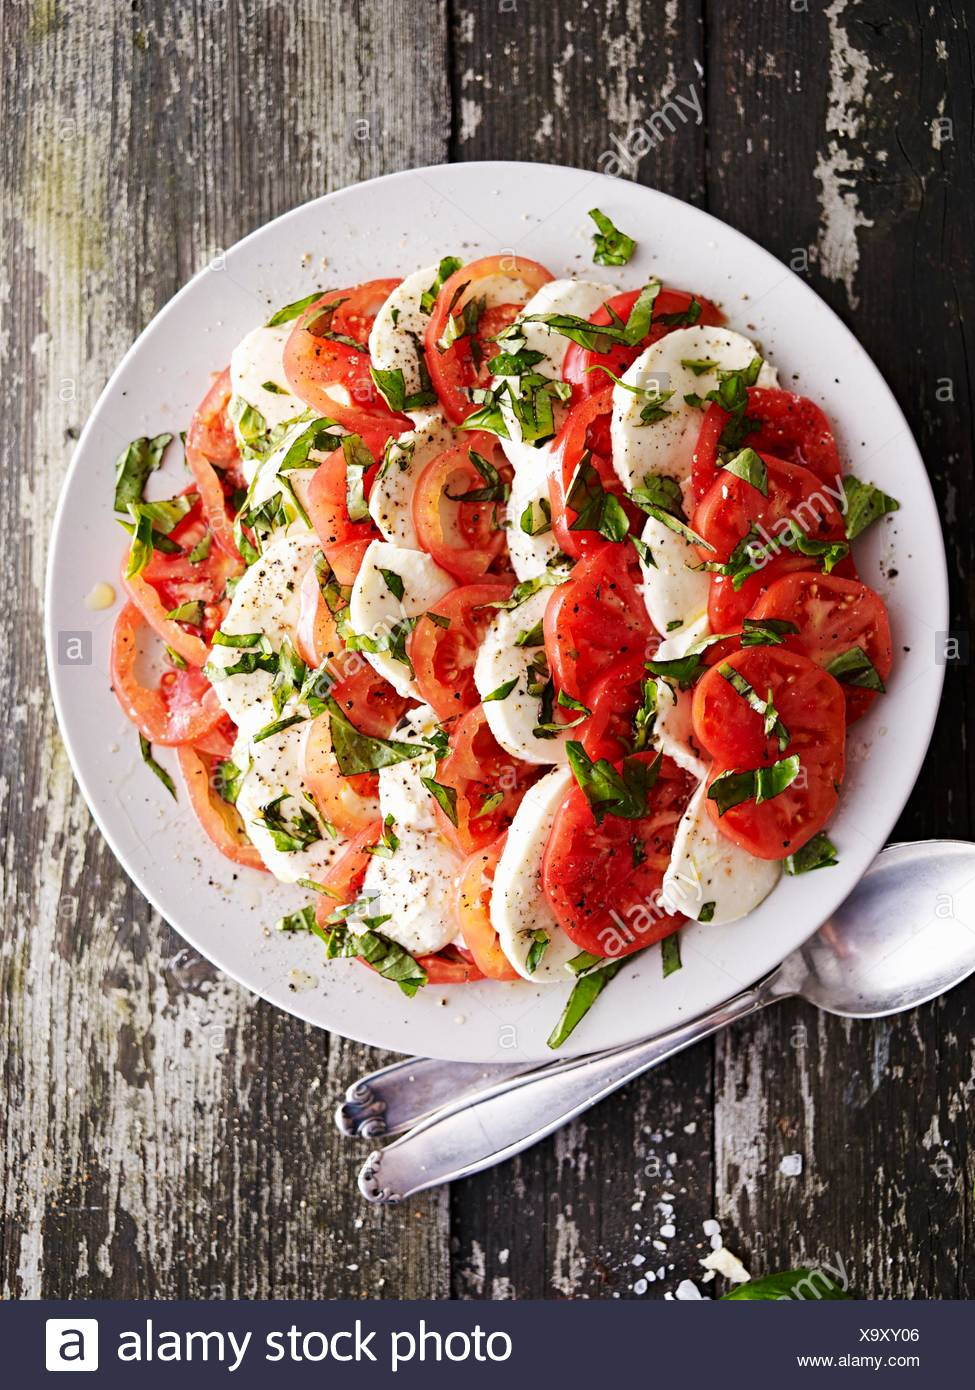 Tomatoes with mozzarella and basil (seen from above) - Stock Image